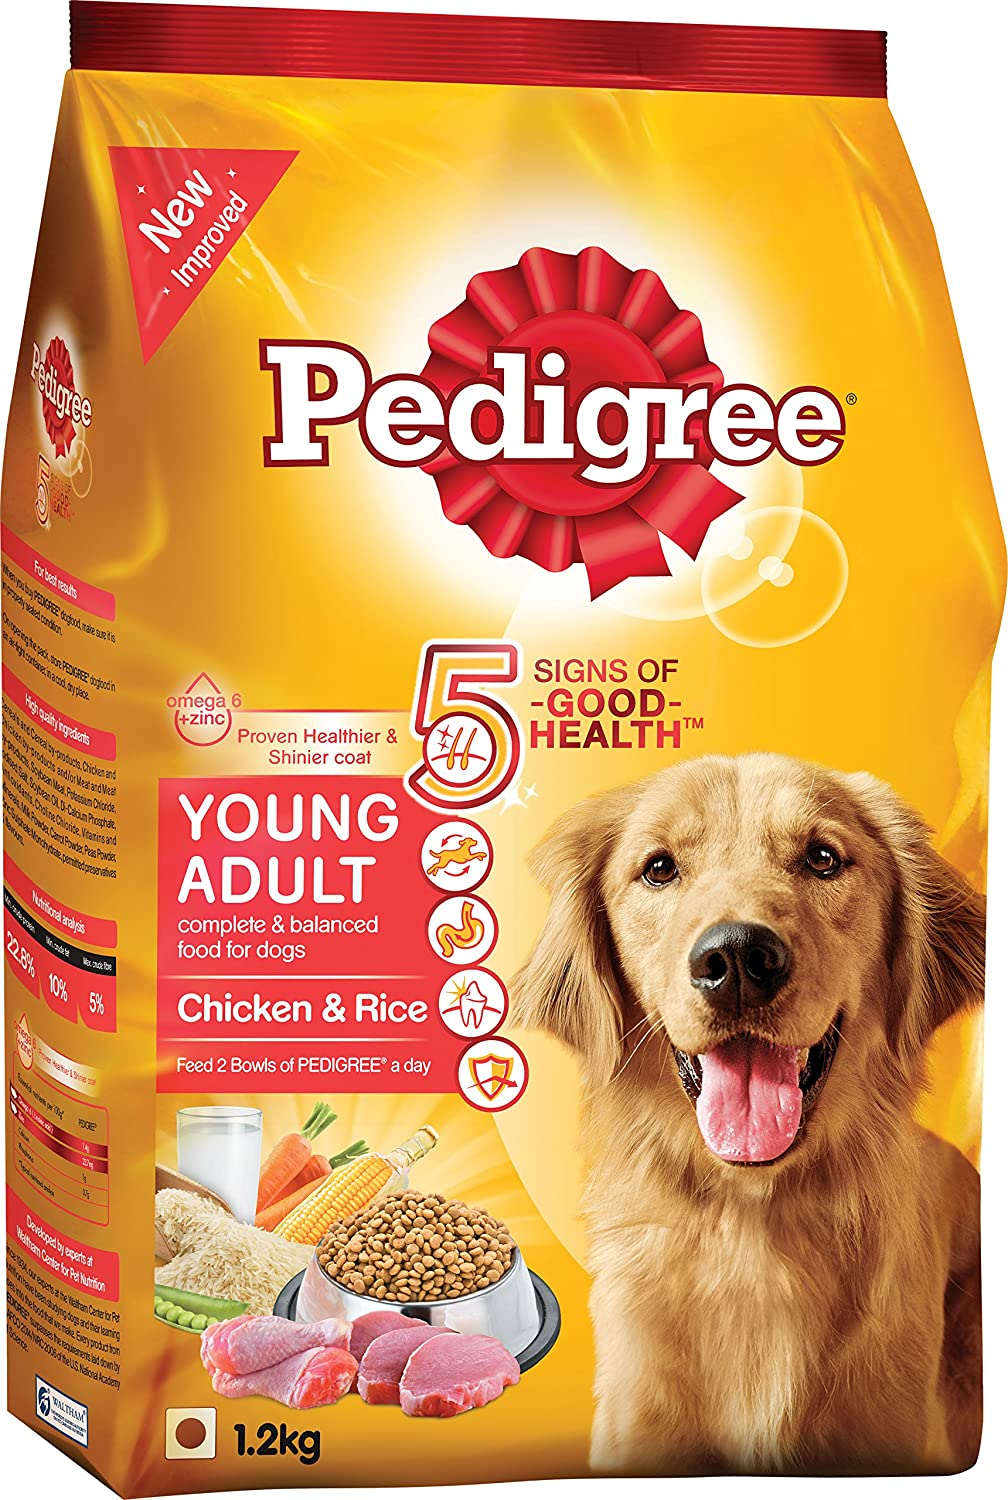 Pedigree Heart Healthy Dog Food